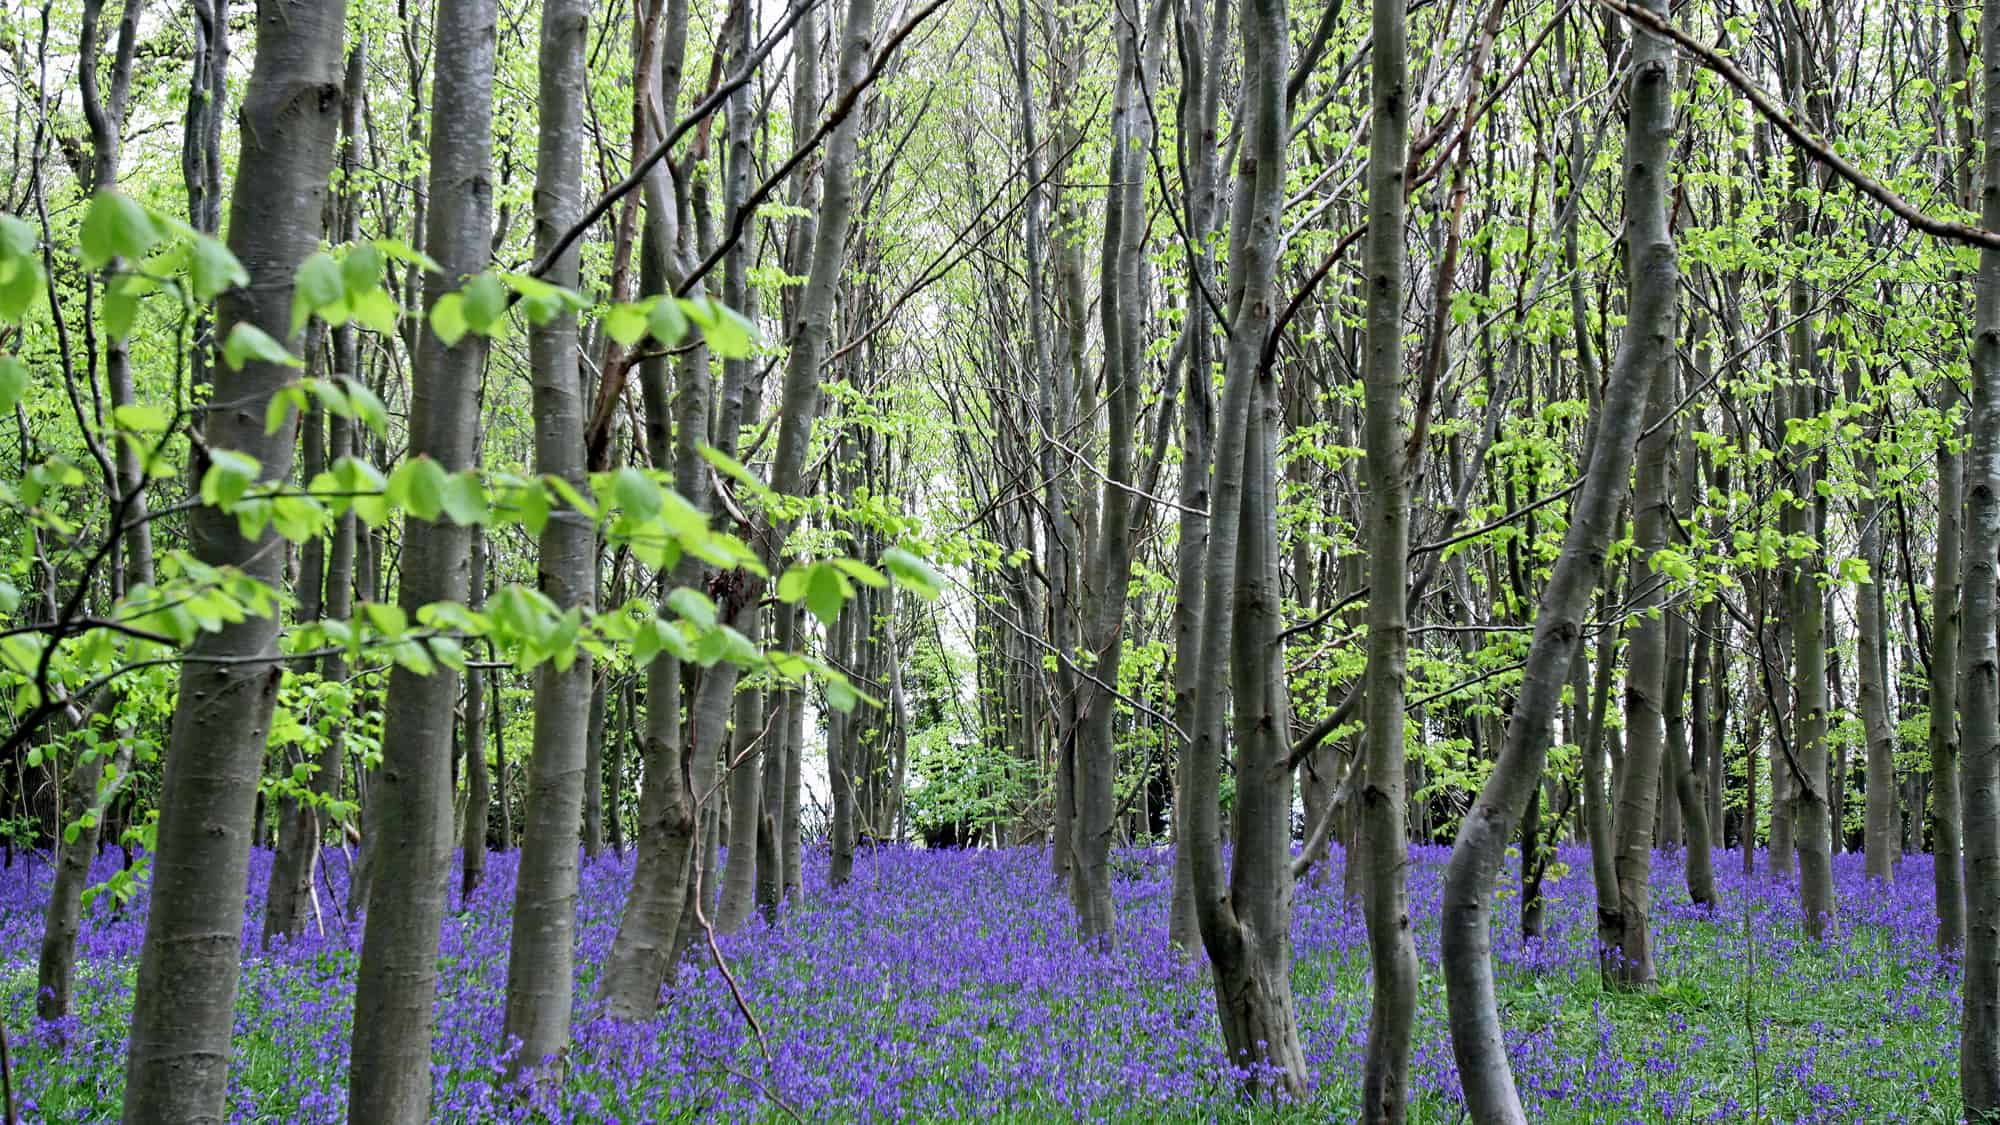 Bluebells covers the woodland floor - springtime